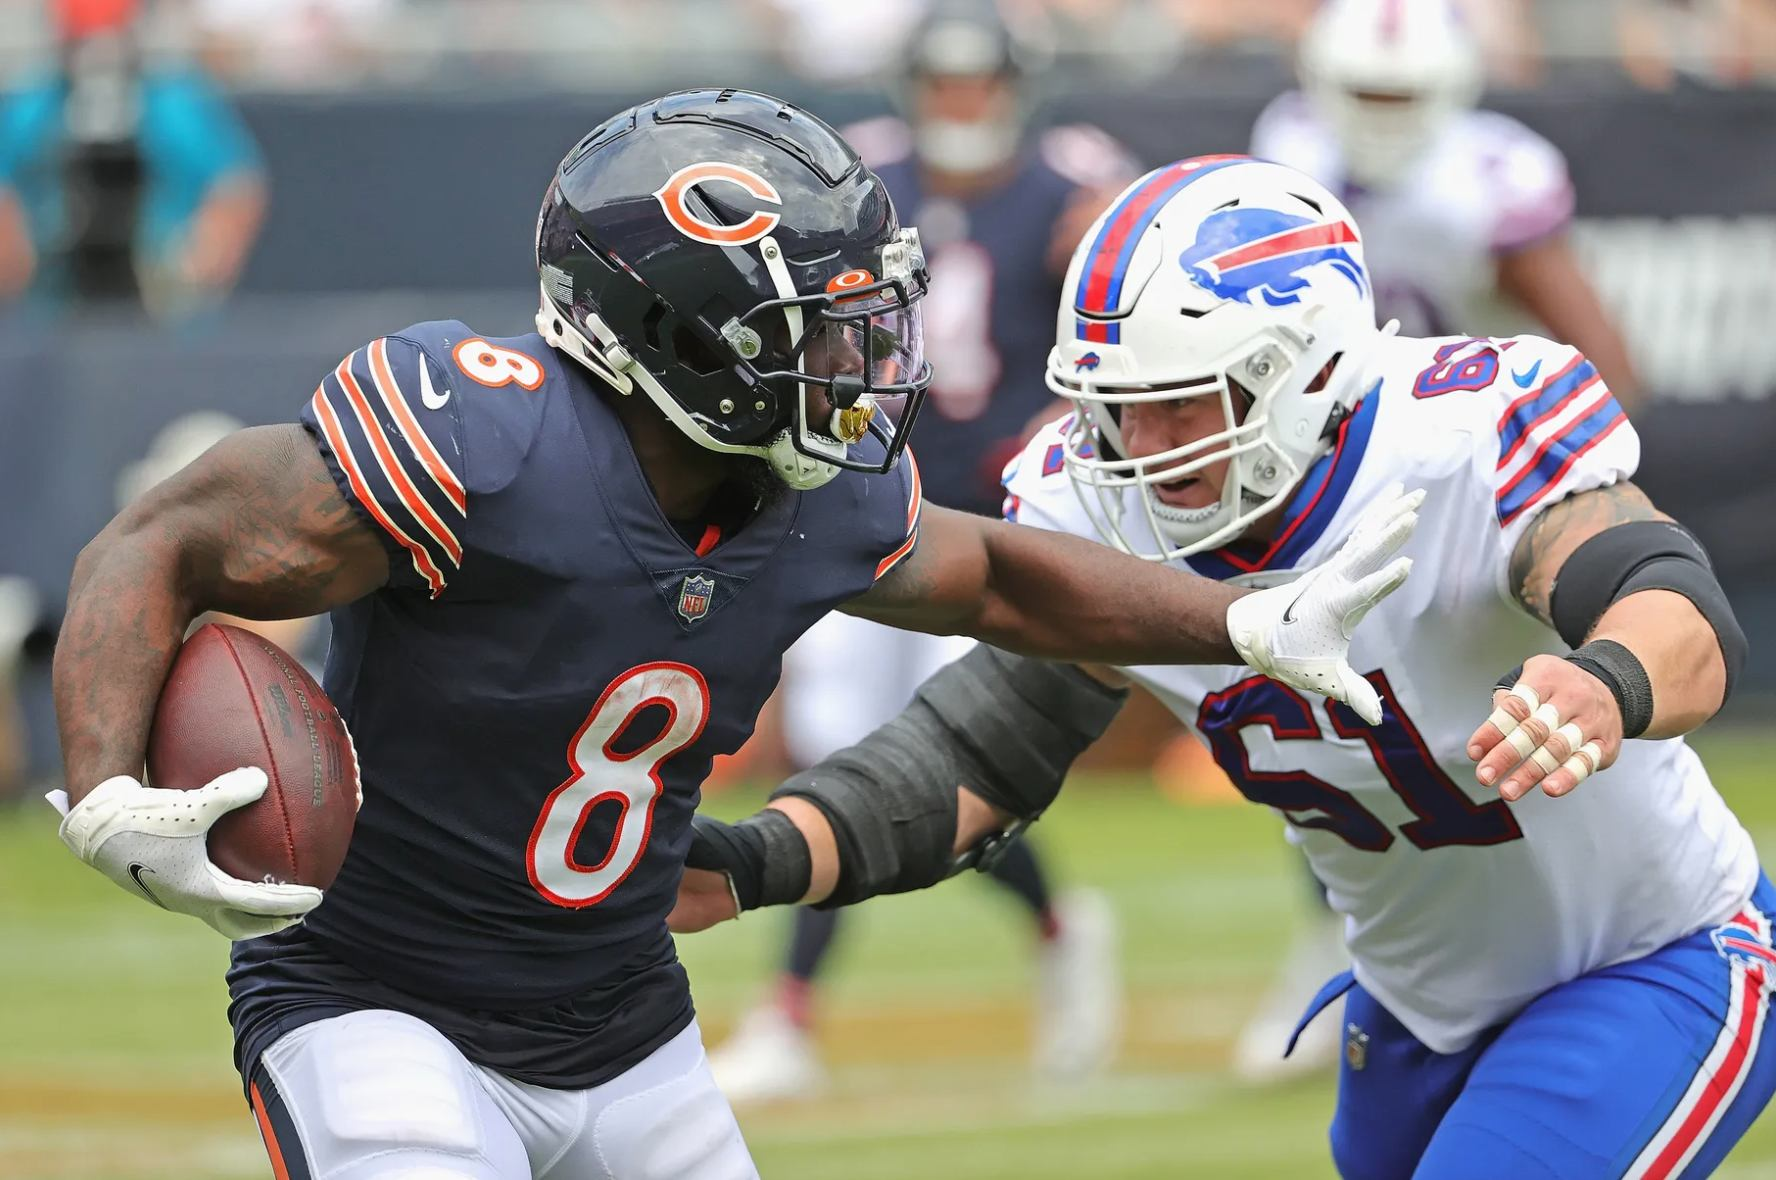 9 Best Sports Bars in Chicago to Watch the Bears Game